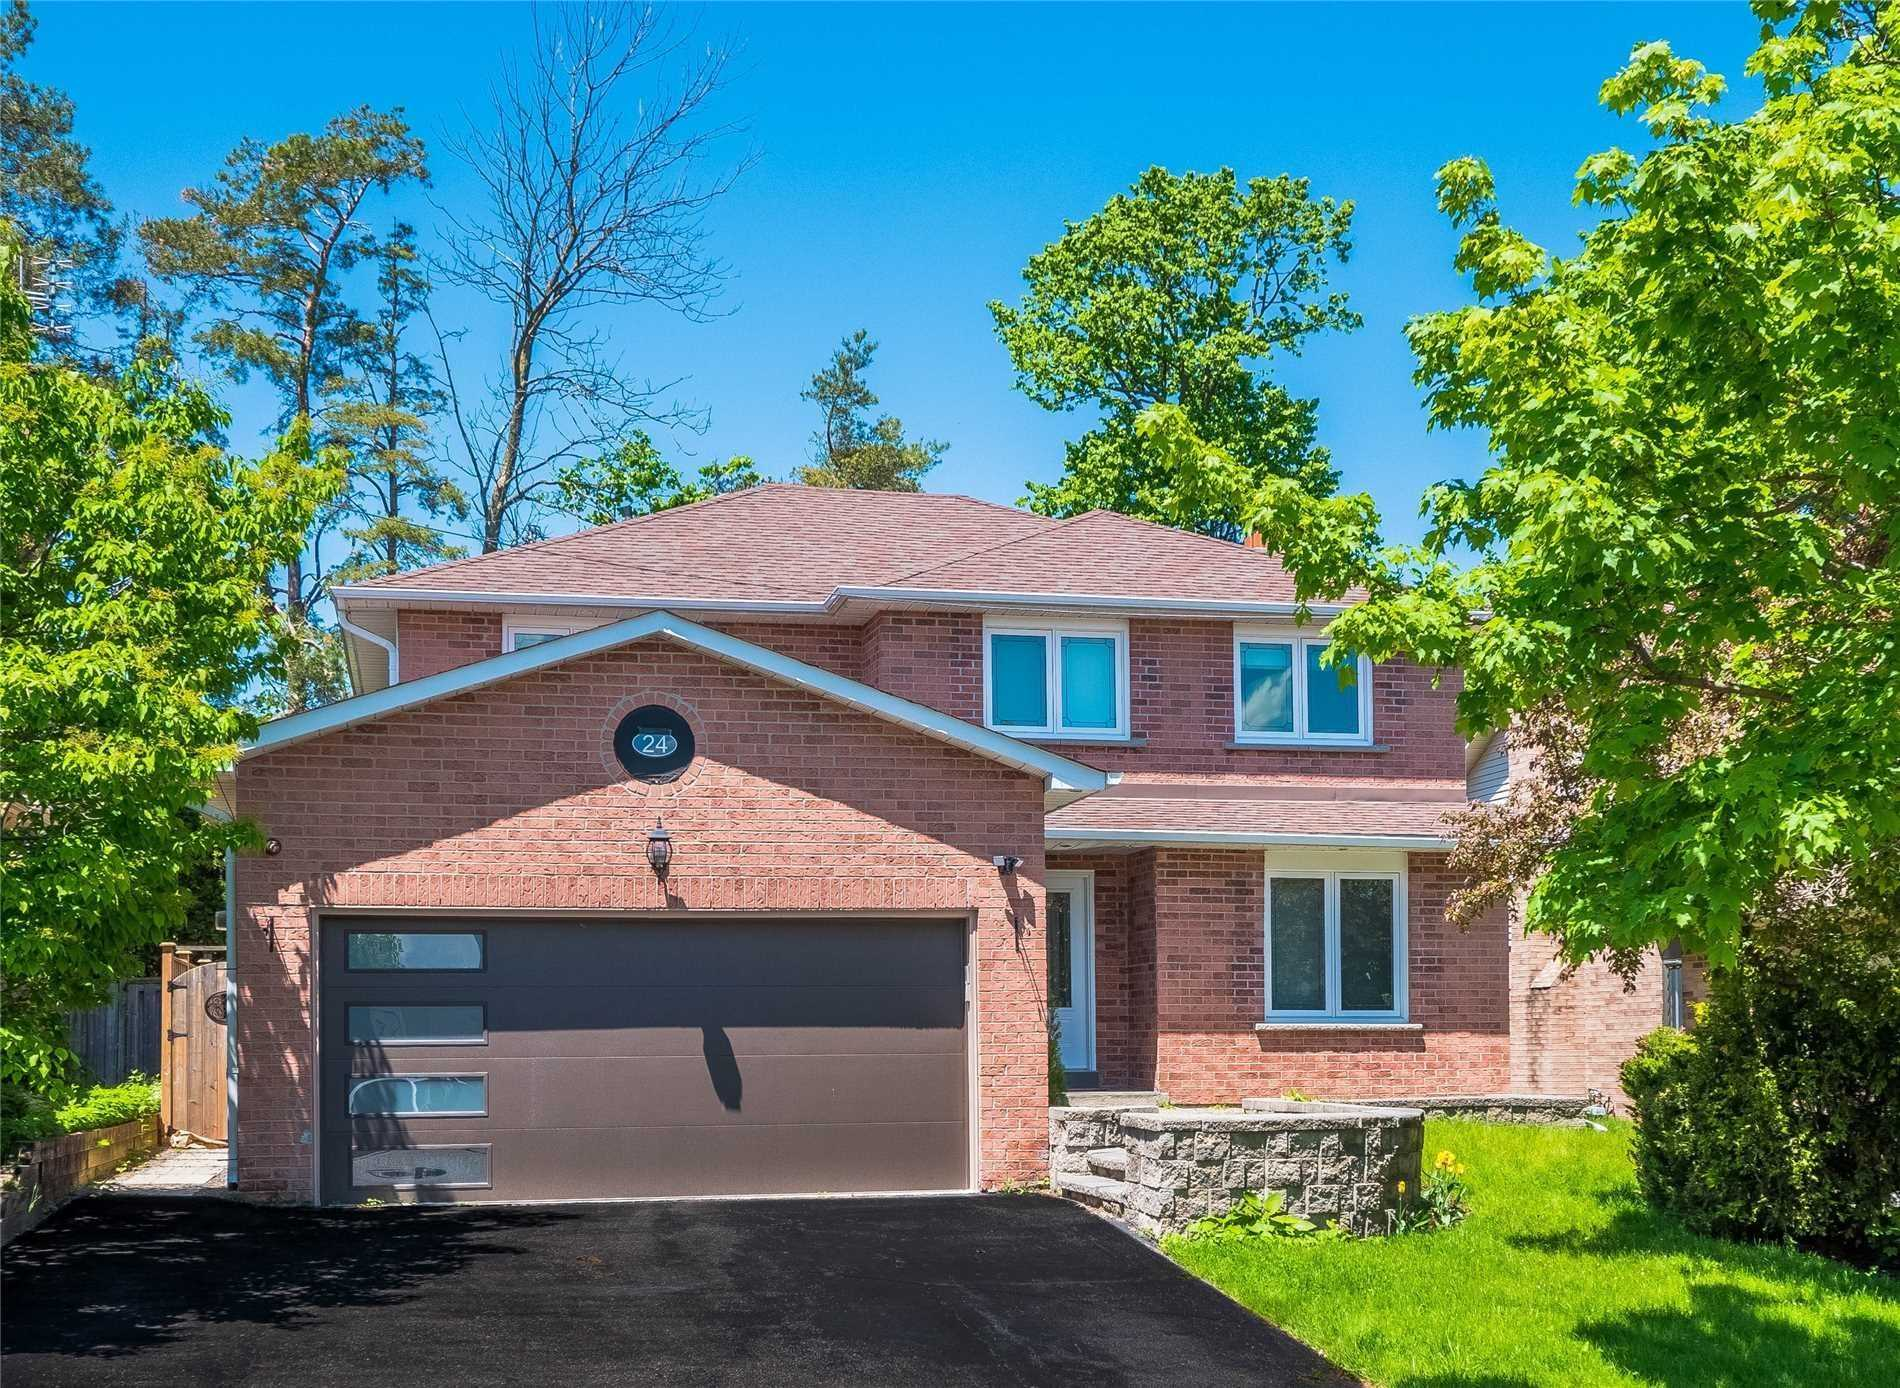 Renovated Top To Bottom 4+2 Bedroom Detached Home * Living & Dining Rm W/Crown Moulding & Bay Window * New Custom Eat-In Kitchen W/S/S Appl & Granite Counters * Breakfast Area W/W/O To Large Deck * Family Rm W/Gas Fireplace * Master Bedroom W/4Pc Ensuite & W/I Closet * Newly Renovated Fin'd Bsmt W/Living+Kithcenette+2 Bdrms+3Pc Bath & Wood Burning Fireplace * New Hardwood Flrs Thru-Out * Private Backyard W/Large Covered Deck & New Hot Tub * Double Car Garage